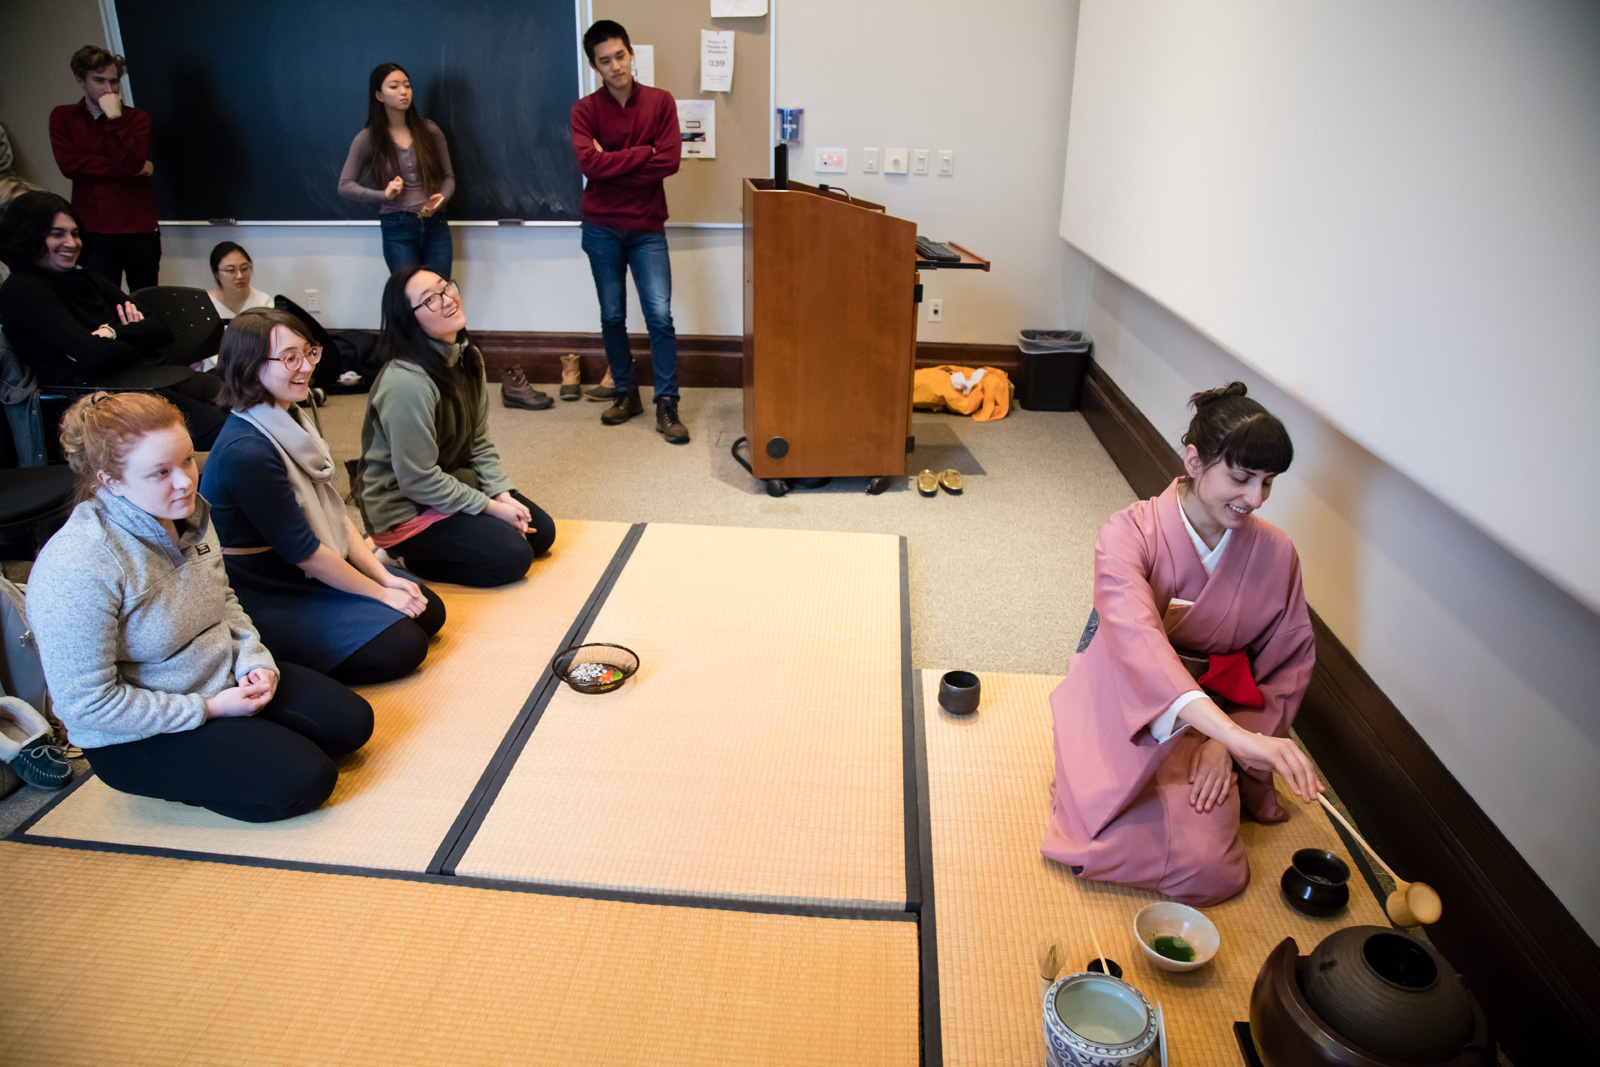 Three students kneel on a straw mat while the ceremony leader prepares tea